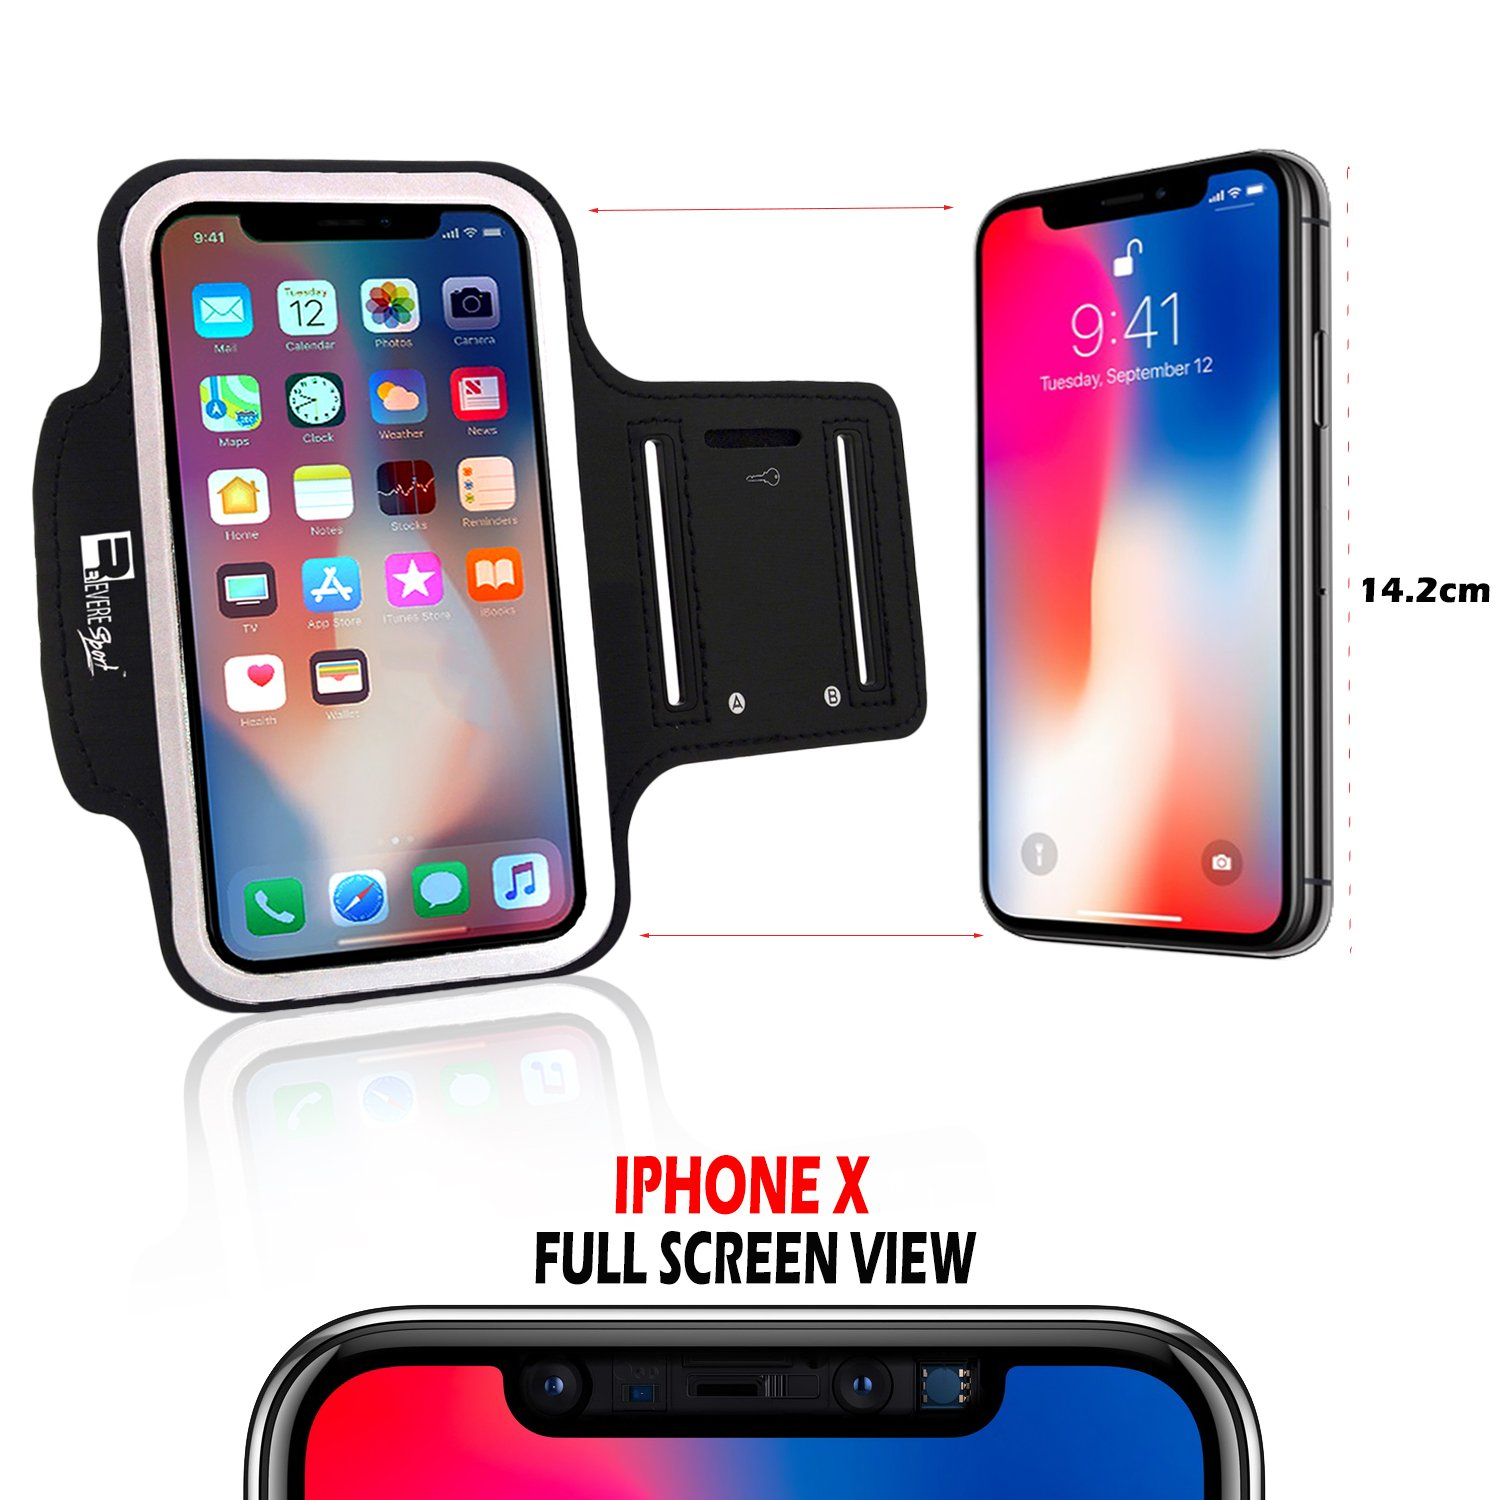 Premium iPhone X/10 Running Armband with Full Screen Access. Sports Phone Arm Case Holder for Jogging, Gym Workouts & Exercise by Revere Sport (Image #3)